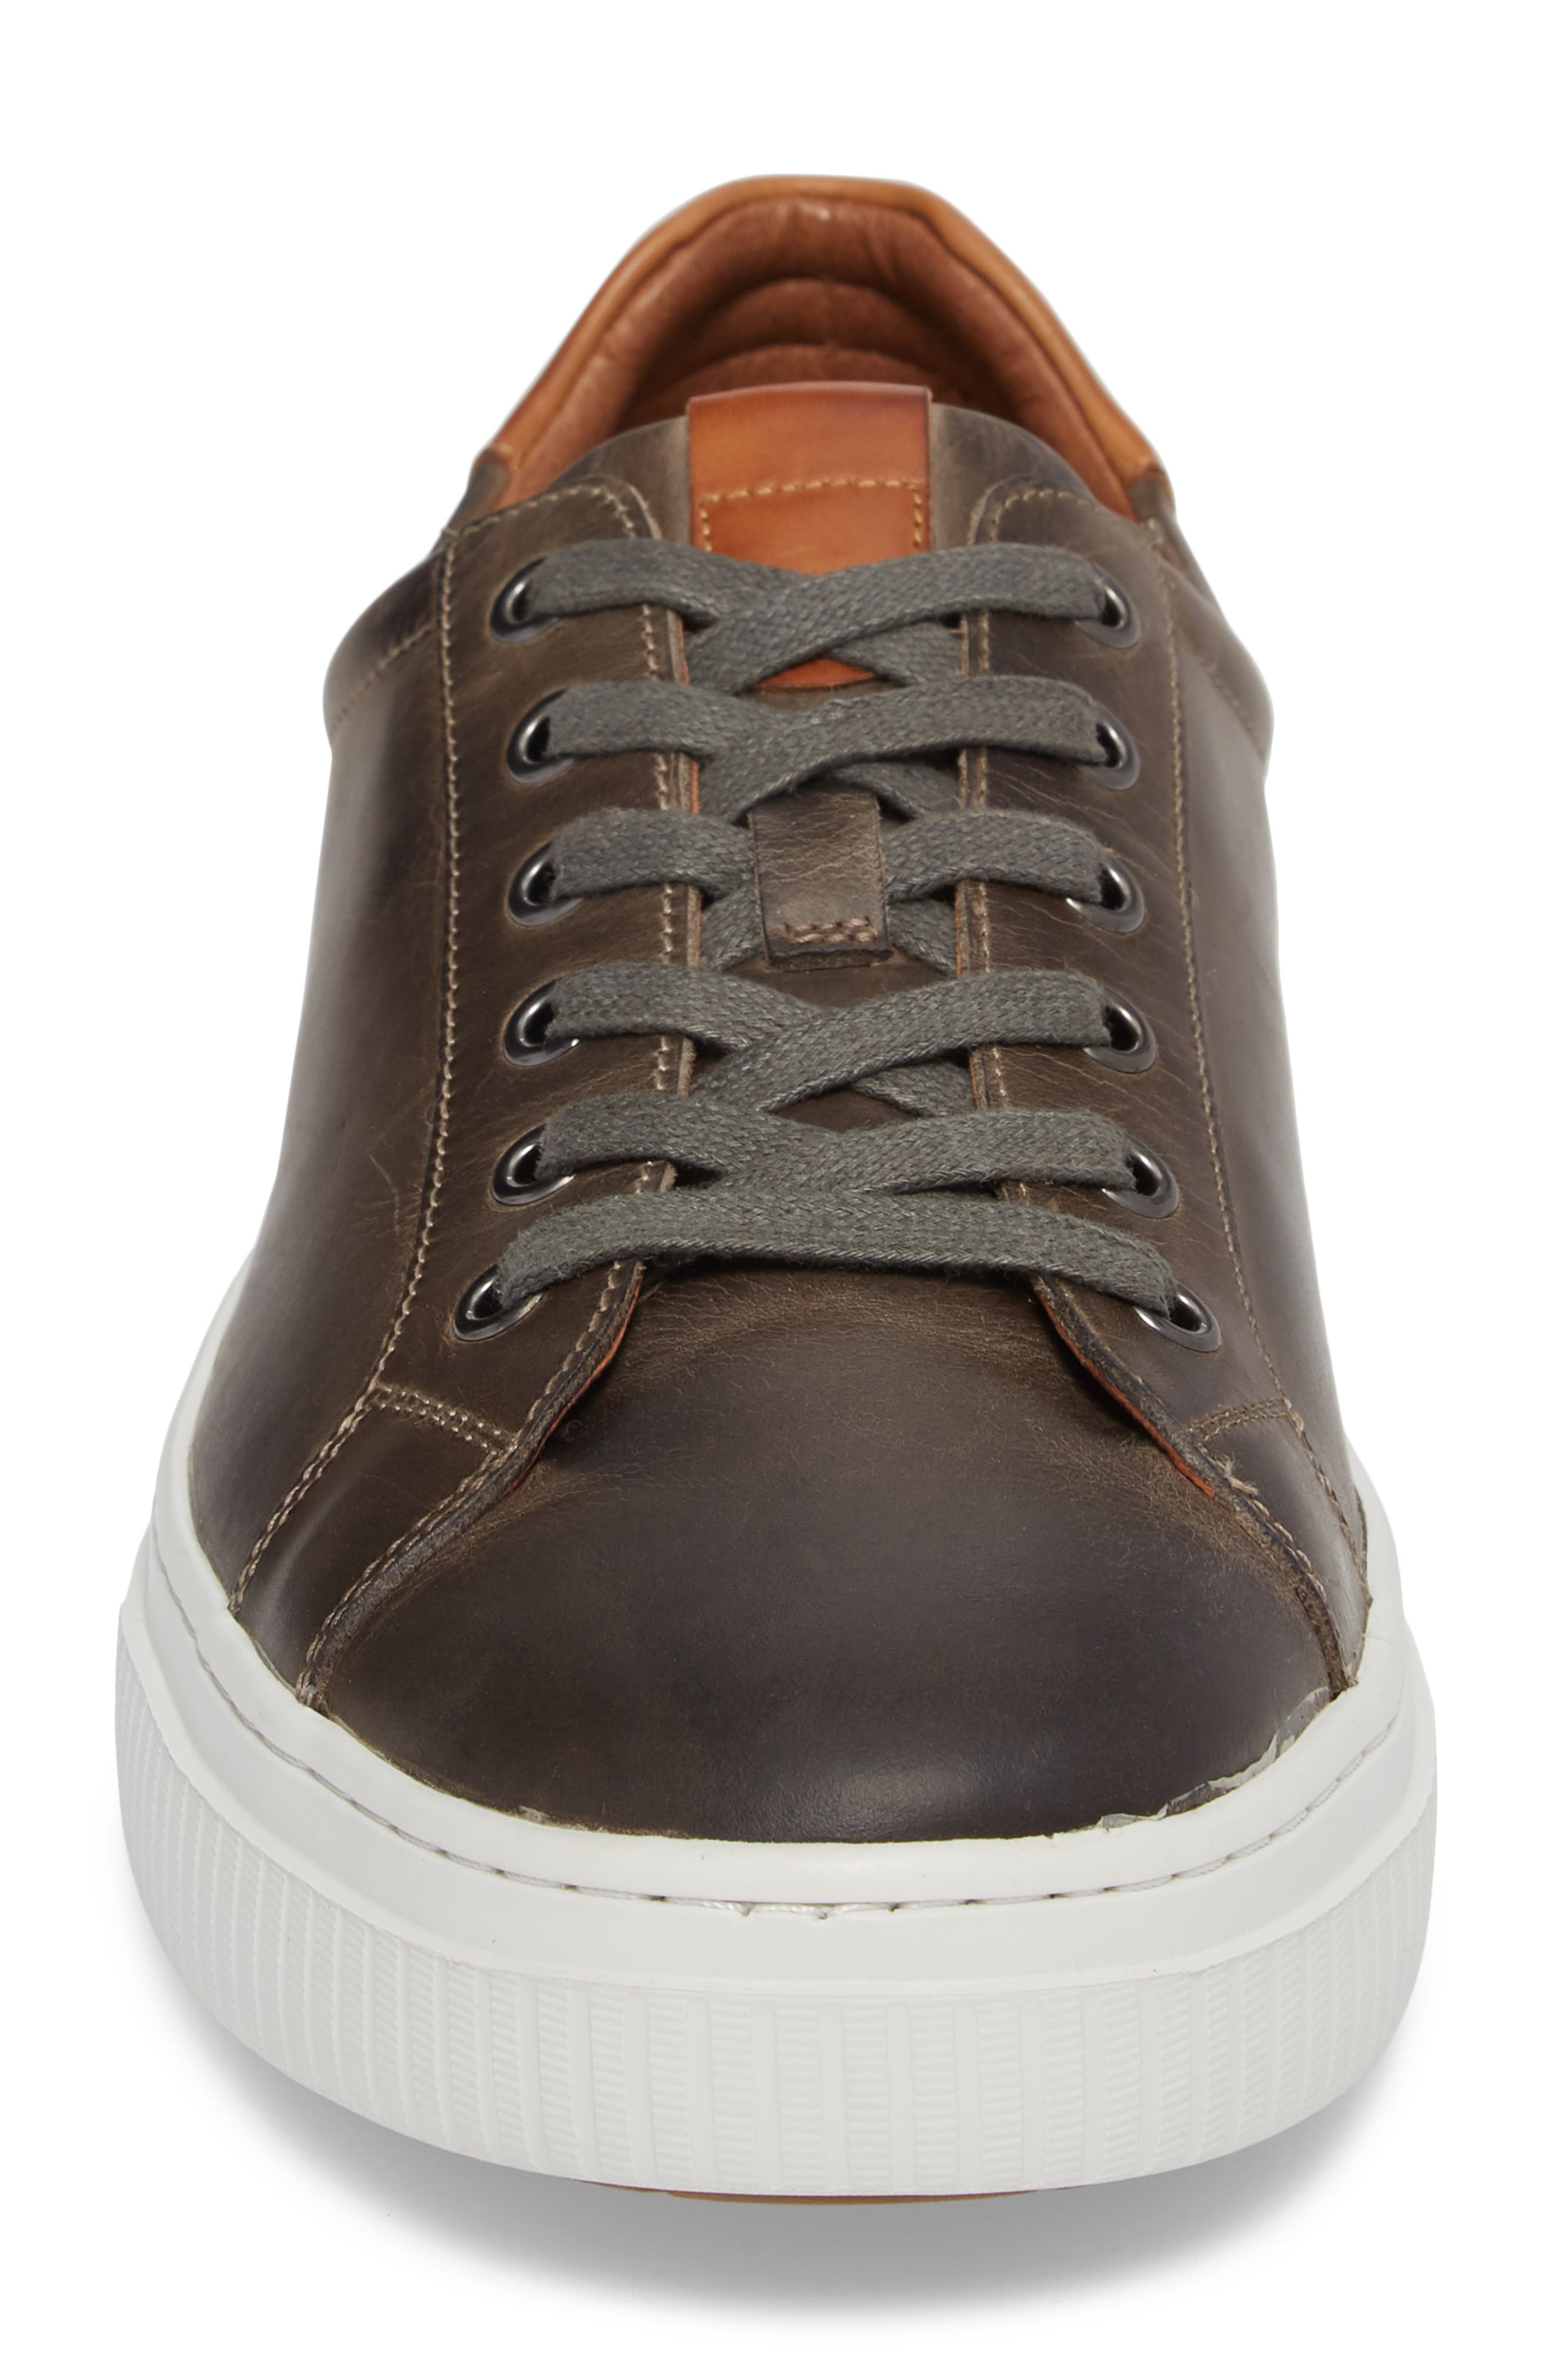 Toliver Low Top Sneaker,                             Alternate thumbnail 4, color,                             GREY LEATHER